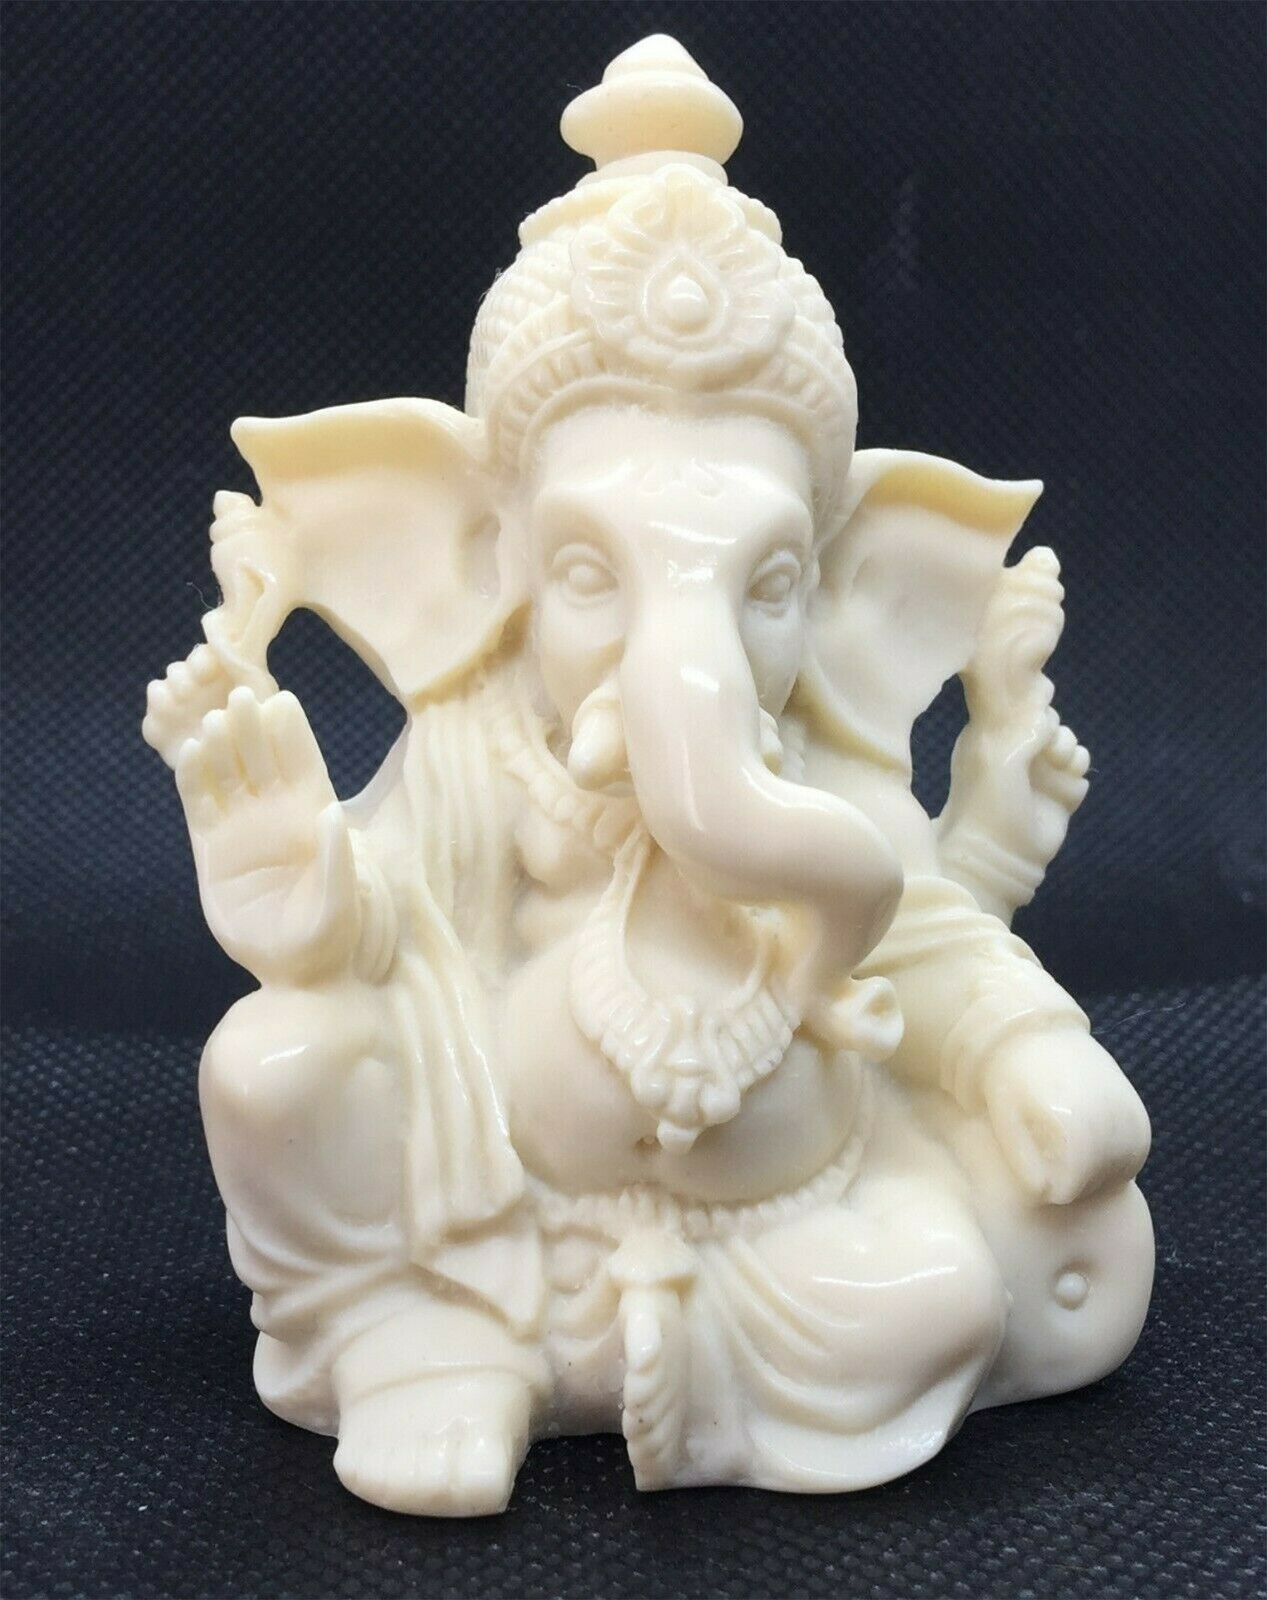 Primary image for Mold of Ganesha, Candle Ganesh, Silicon mold for candles. Resin, soap mold